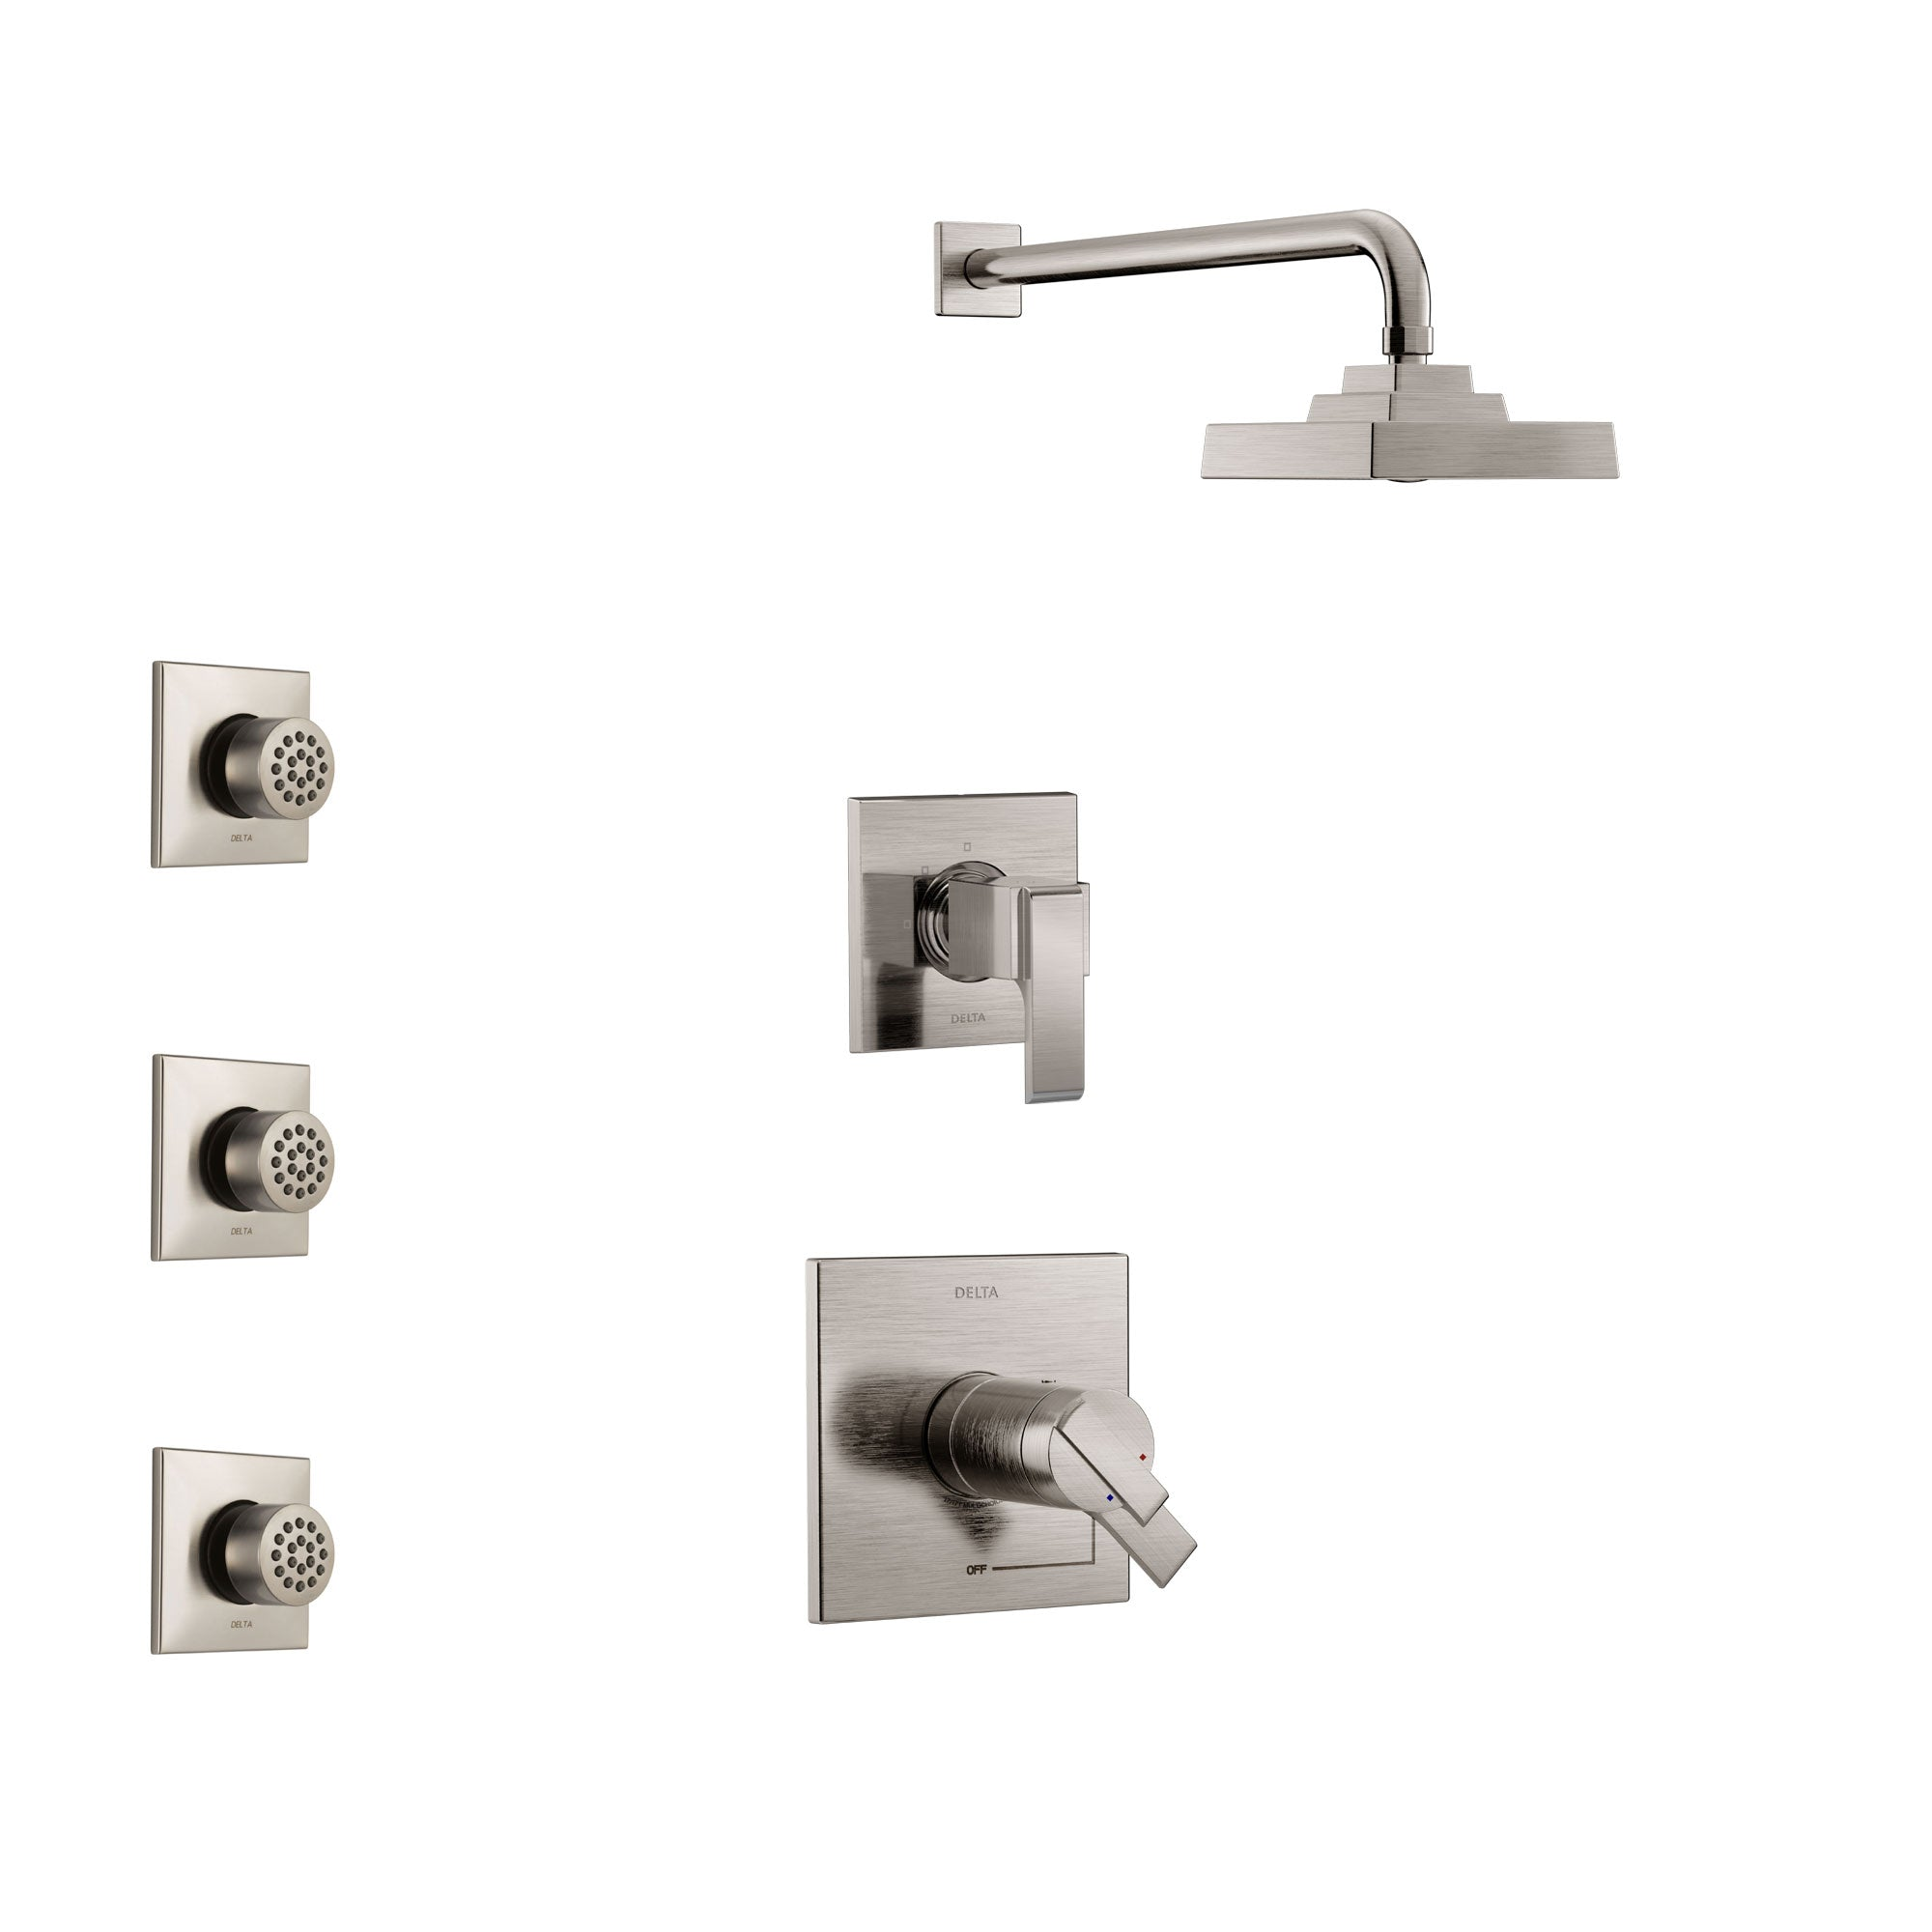 Delta Ara Stainless Steel Finish Shower System with Dual Thermostatic Control Handle, 3-Setting Diverter, Showerhead, and 3 Body Sprays SS17T2672SS2